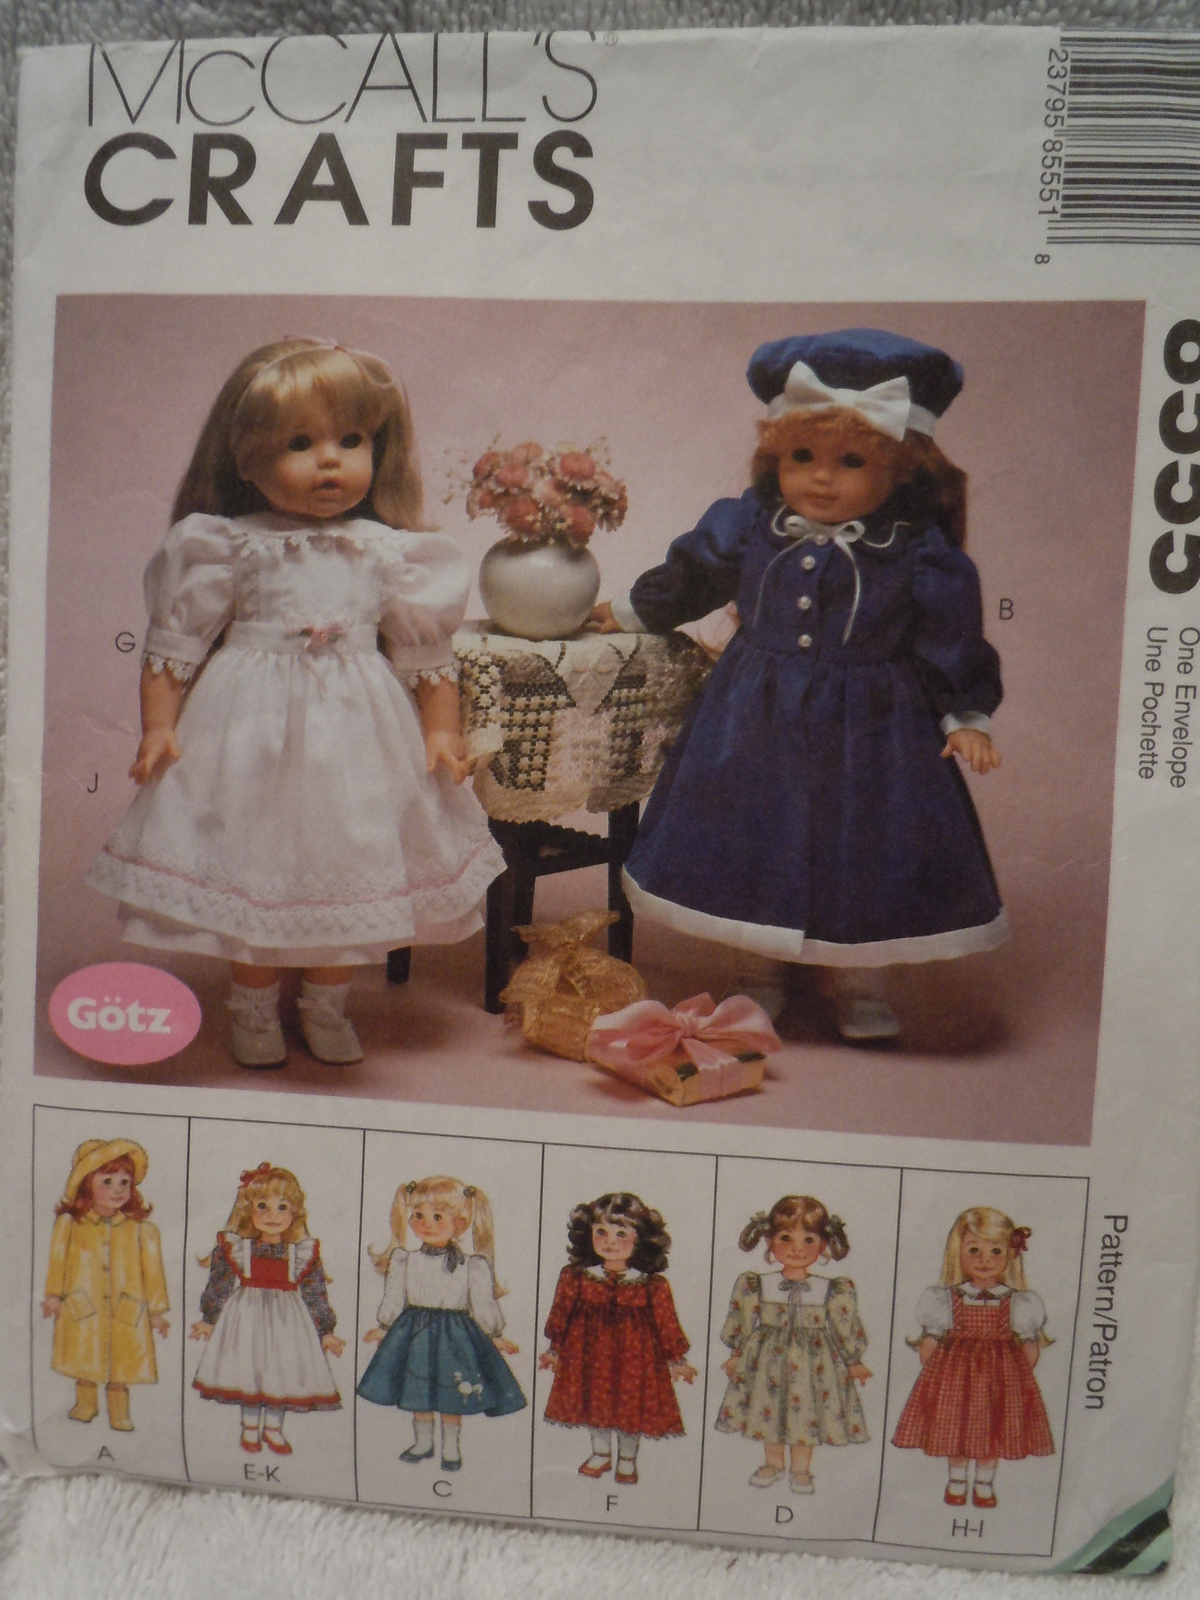 "McCall's Crafts 18"" Doll Clothes Pattern #8555 Copyright 1996"